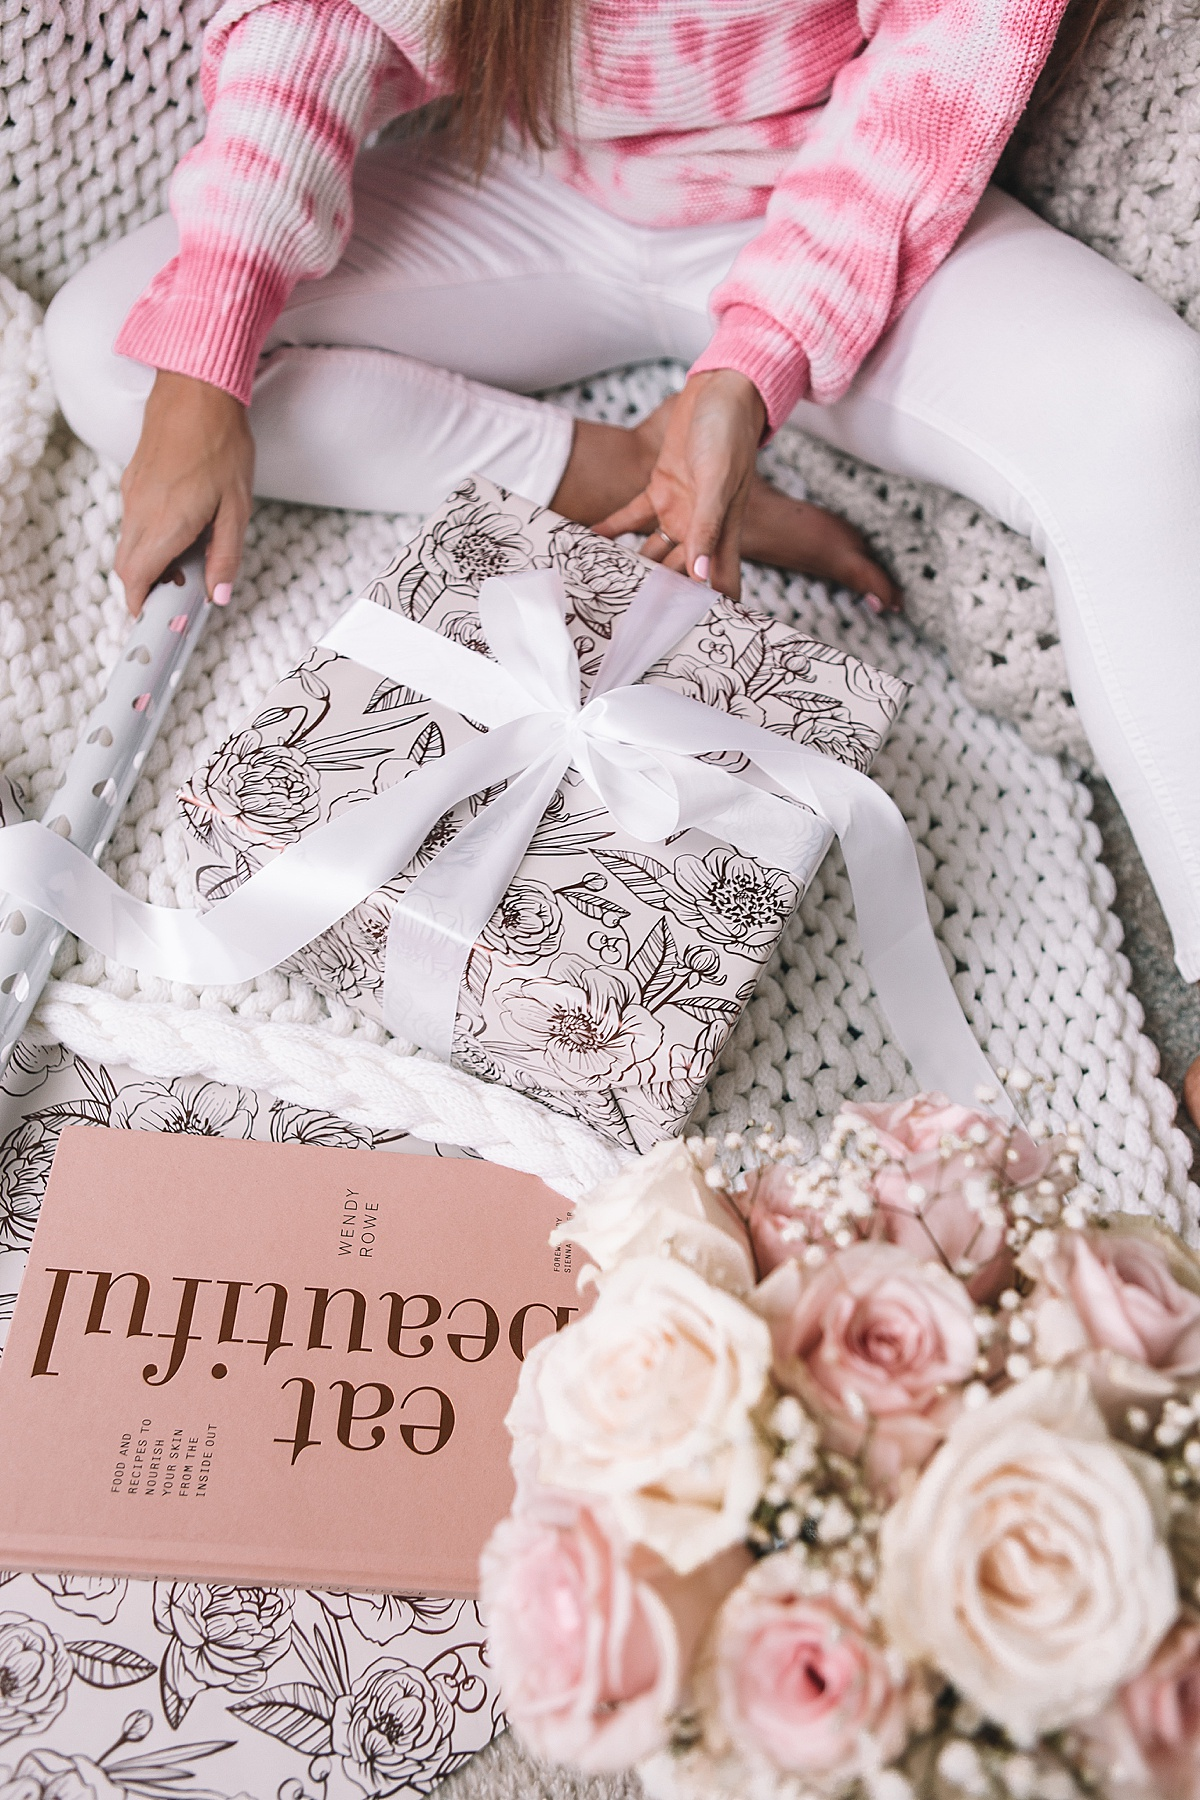 Mothers Day Gifts, Mothers Day, Gifts for Mom, mom gifts, moms birthday, gift ideas for mom, nordstrom, olivia rink gift ideas, nordstrom mothers day